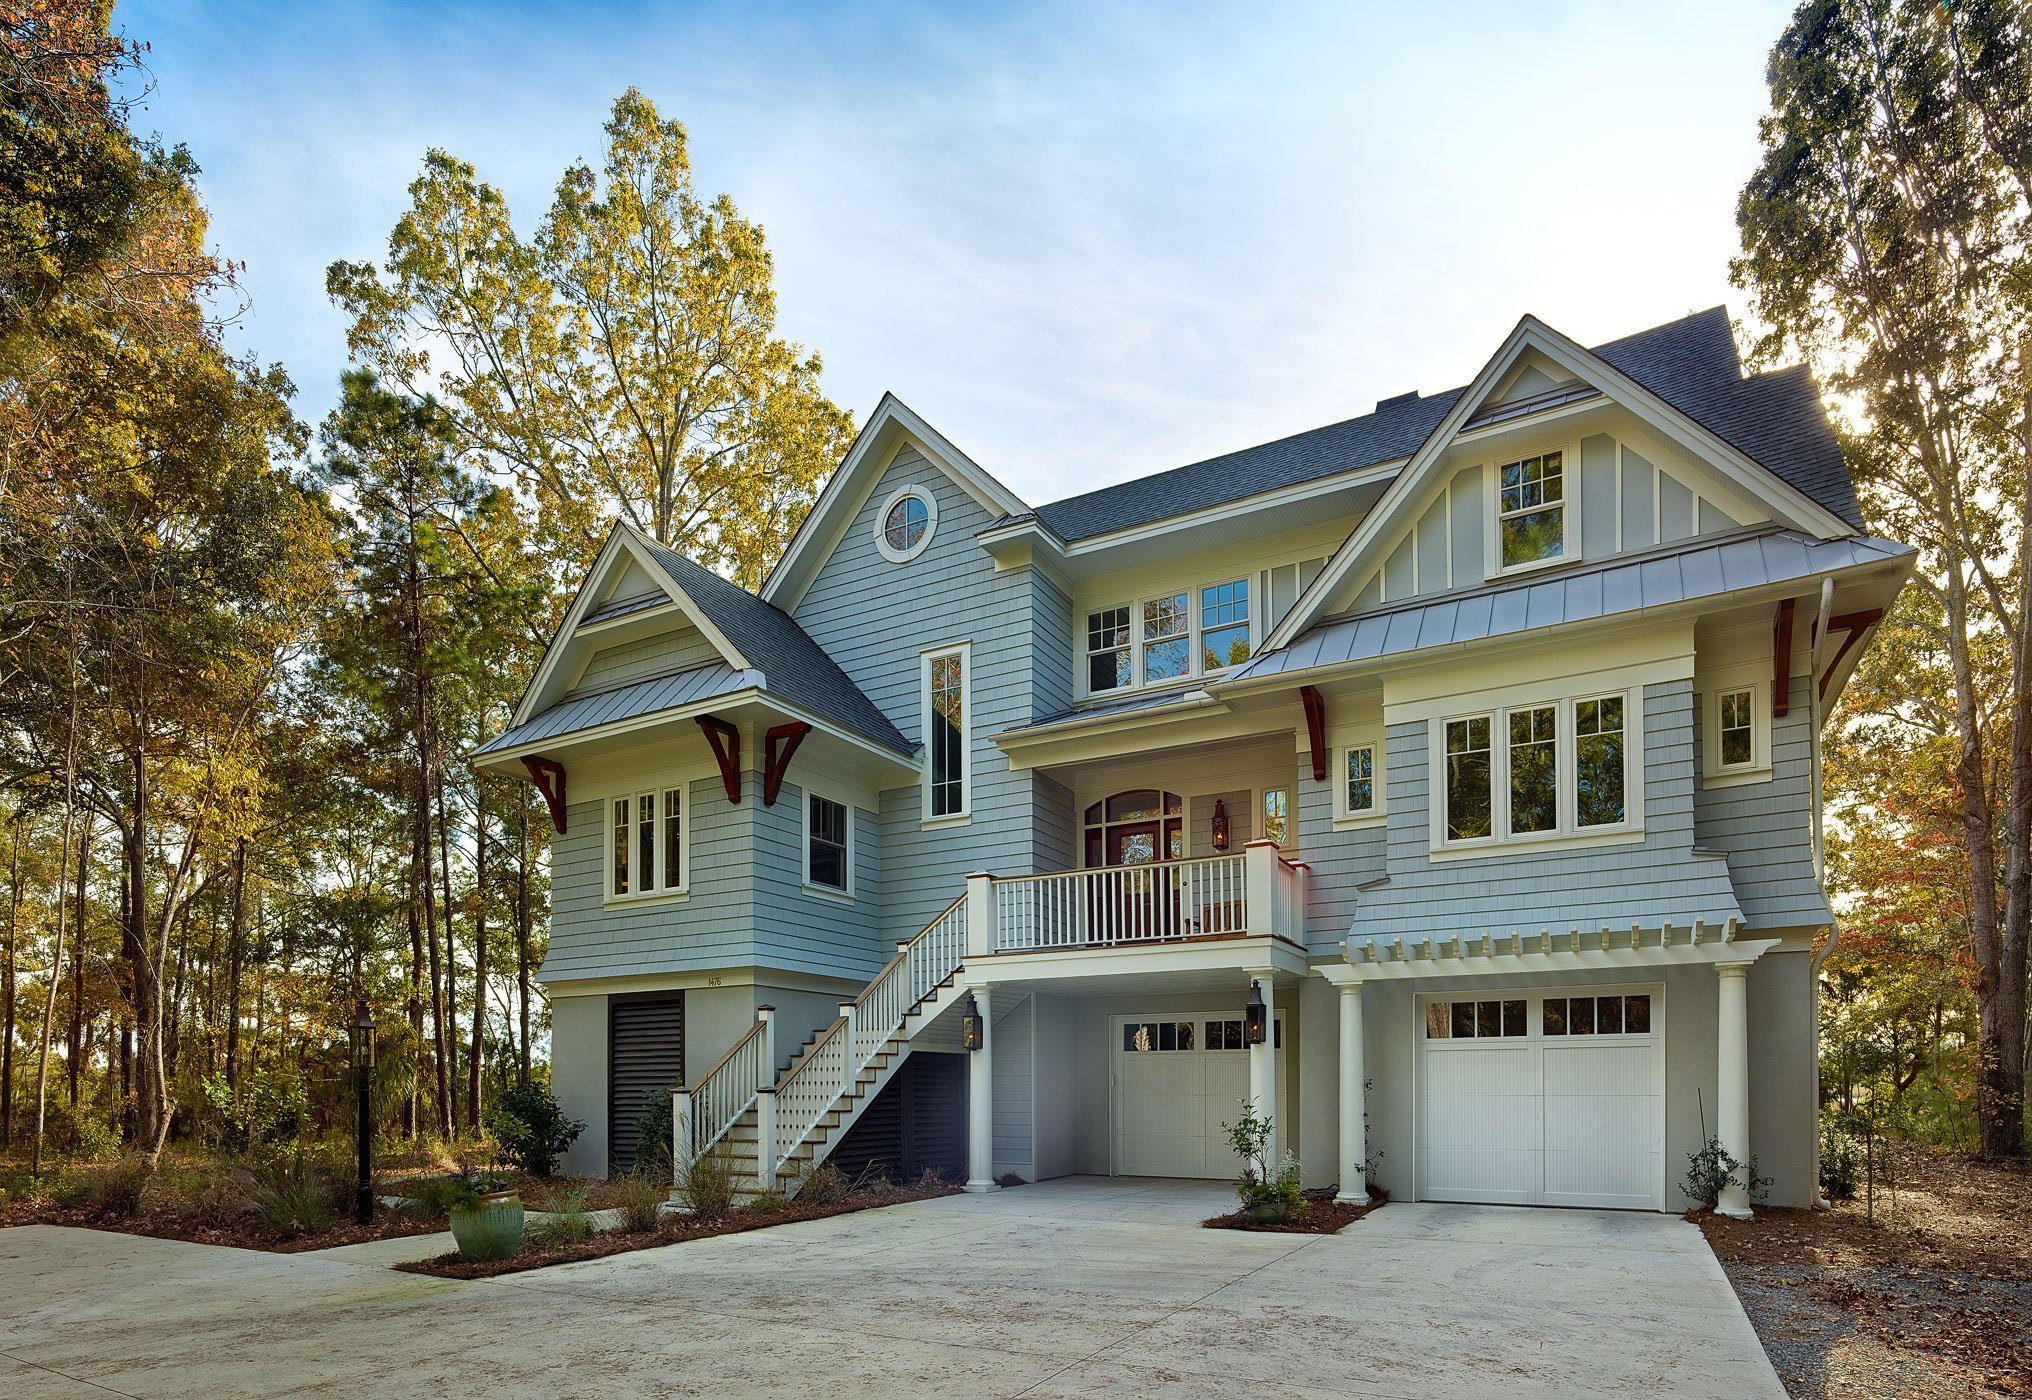 Standing brightly apart from its wooded surroundings, the tall home stands elevated above a concrete foundation with two garage stalls beneath the main body. Front entrance stands on a balcony wrapped in white and natural wood railings.